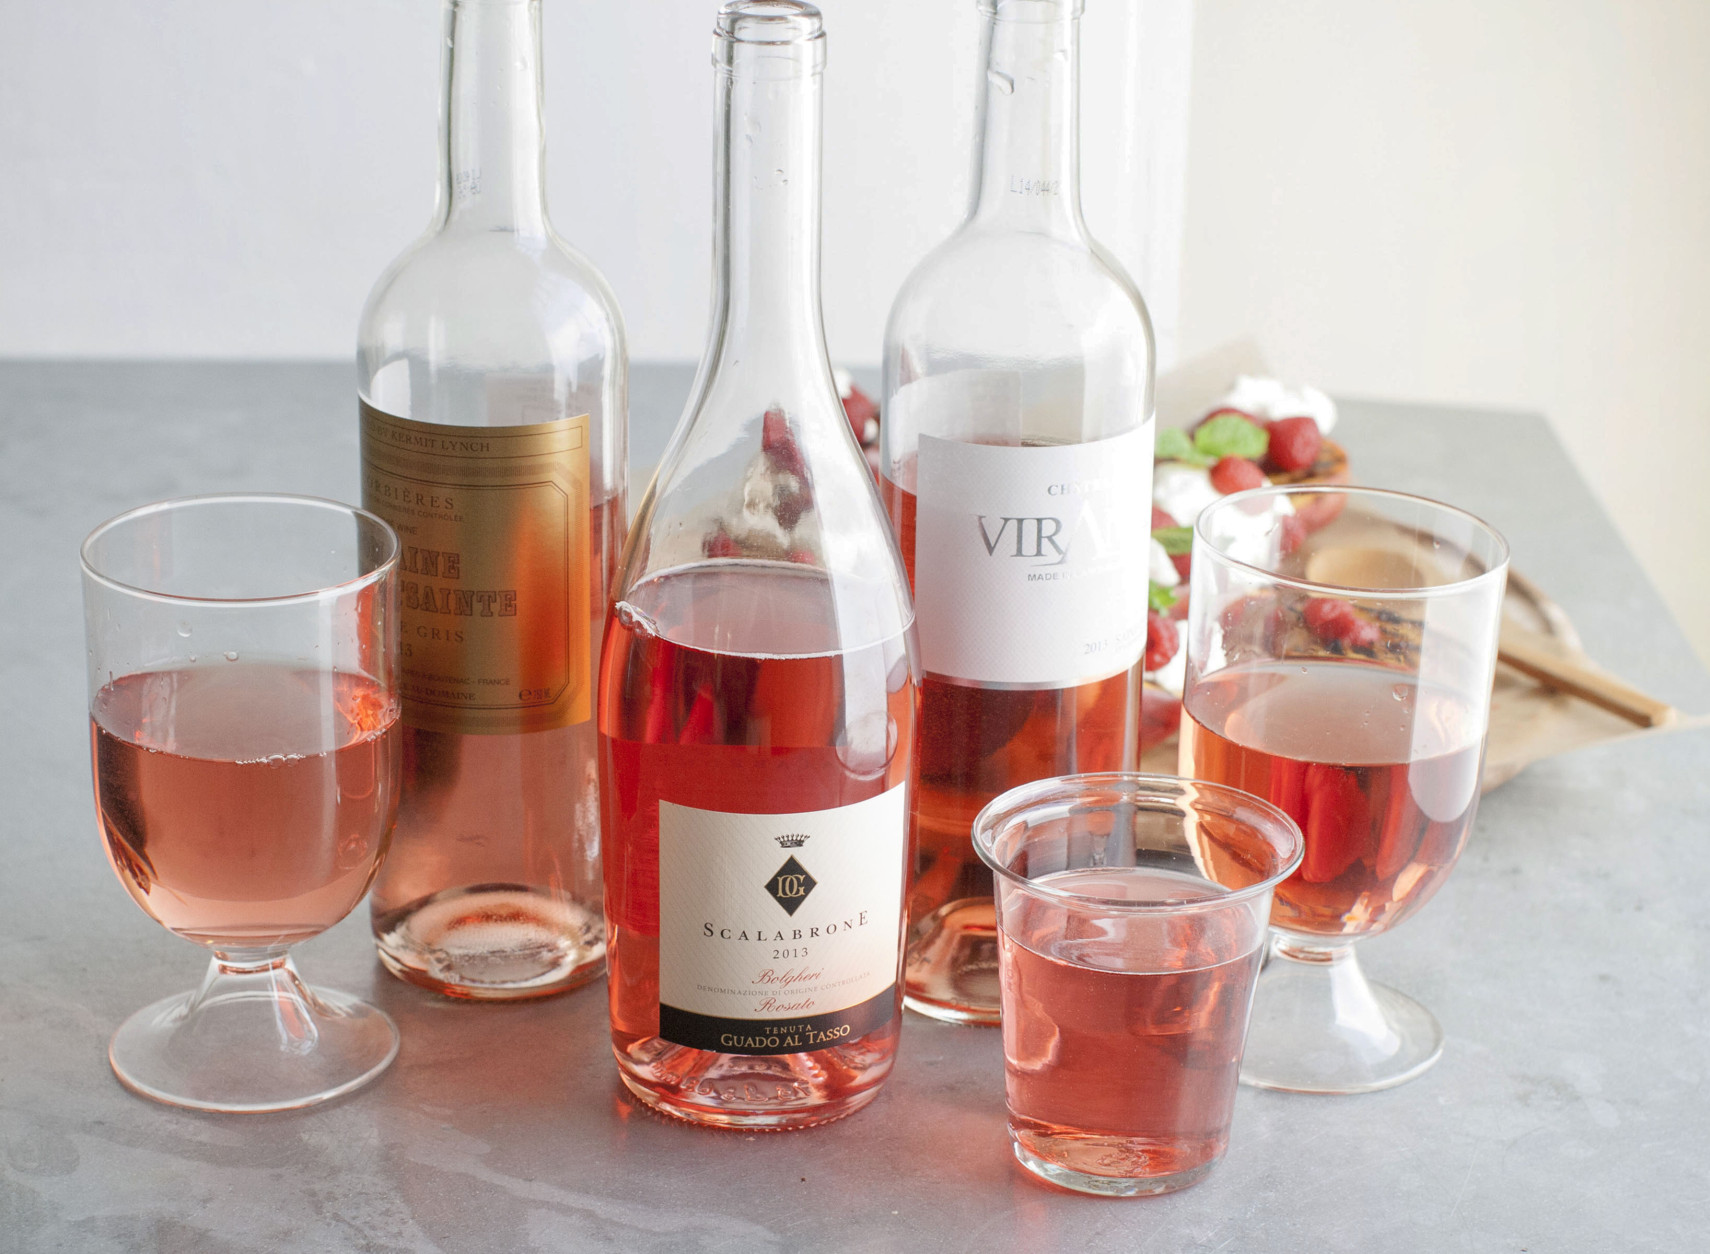 This June 2, 2014 photo shows from left to right, Domaine De Fontsainte, Scalabrone and Chateau Viranel rose wines in Concord, N.H. (AP Photo/Matthew Mead)